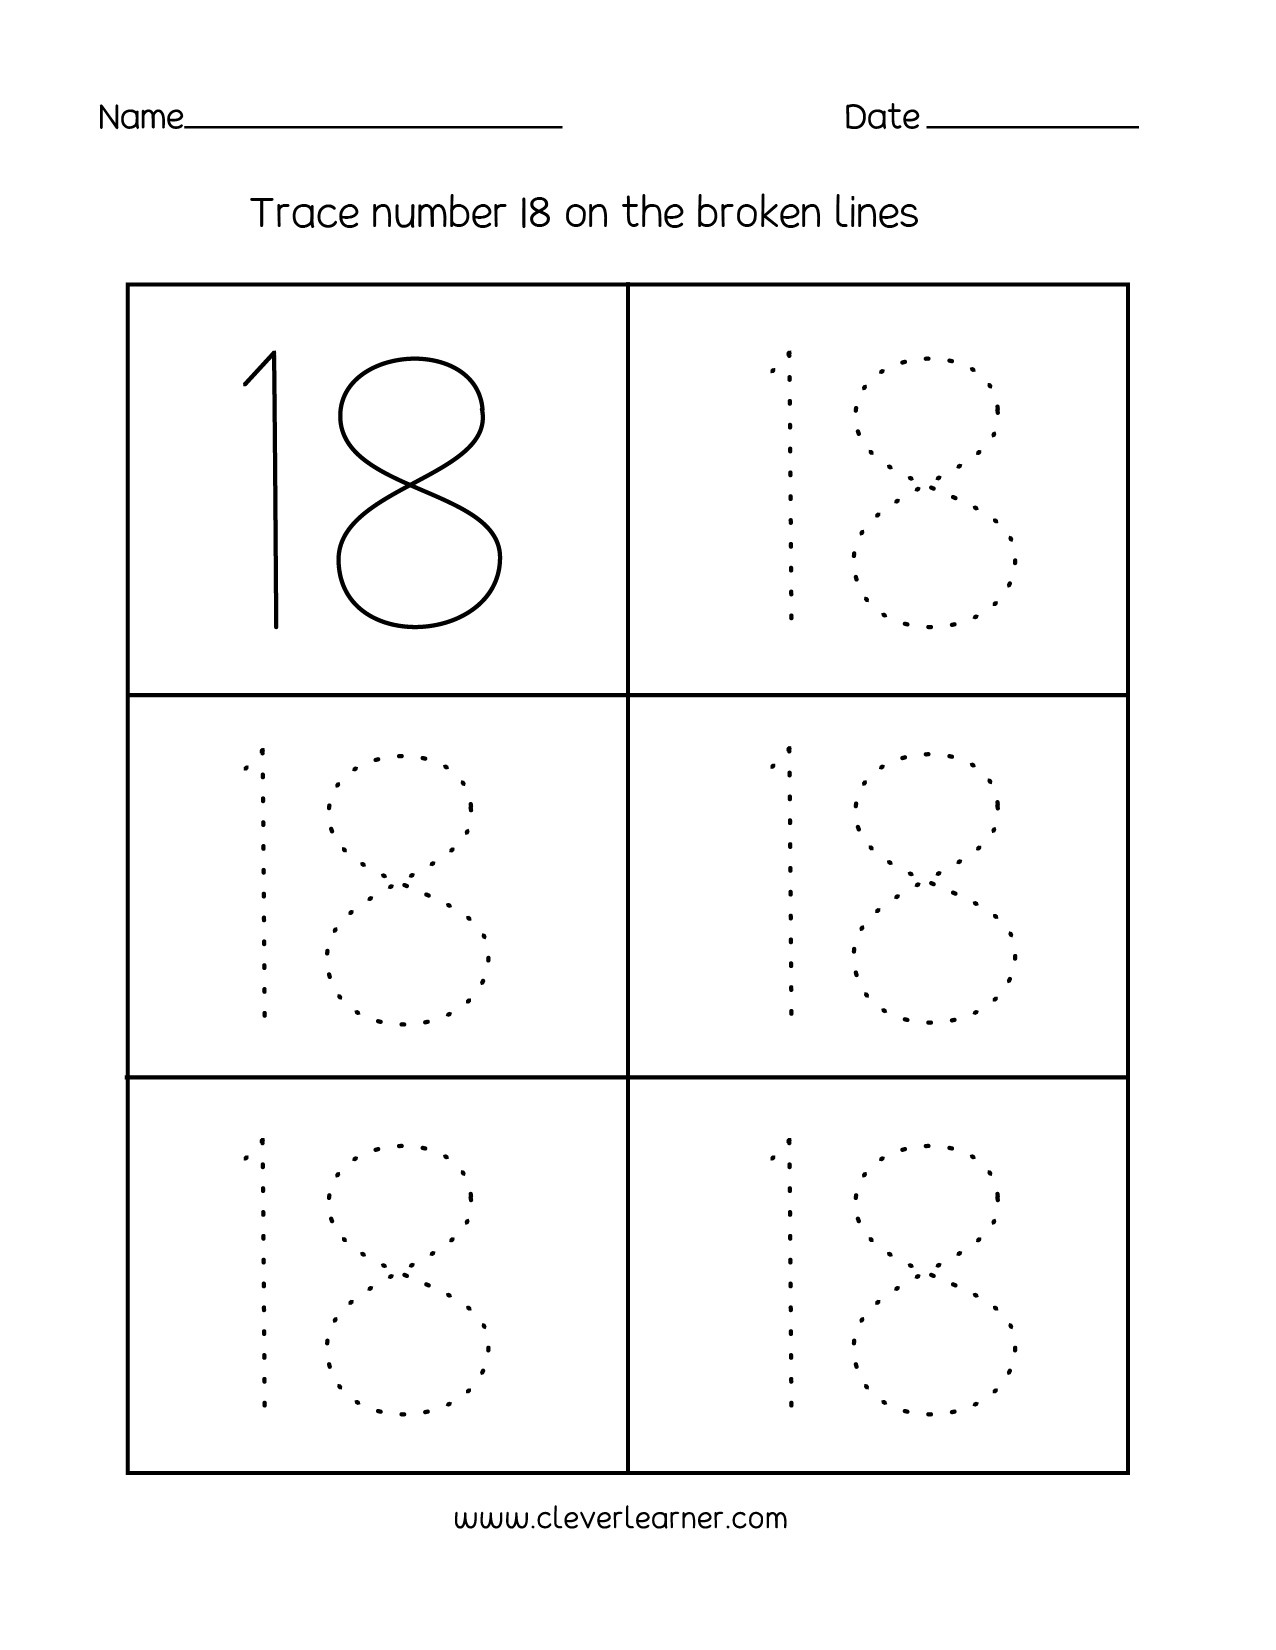 Free Printable Number Tracing Worksheets Number 18 Writing Counting and Identification Printable